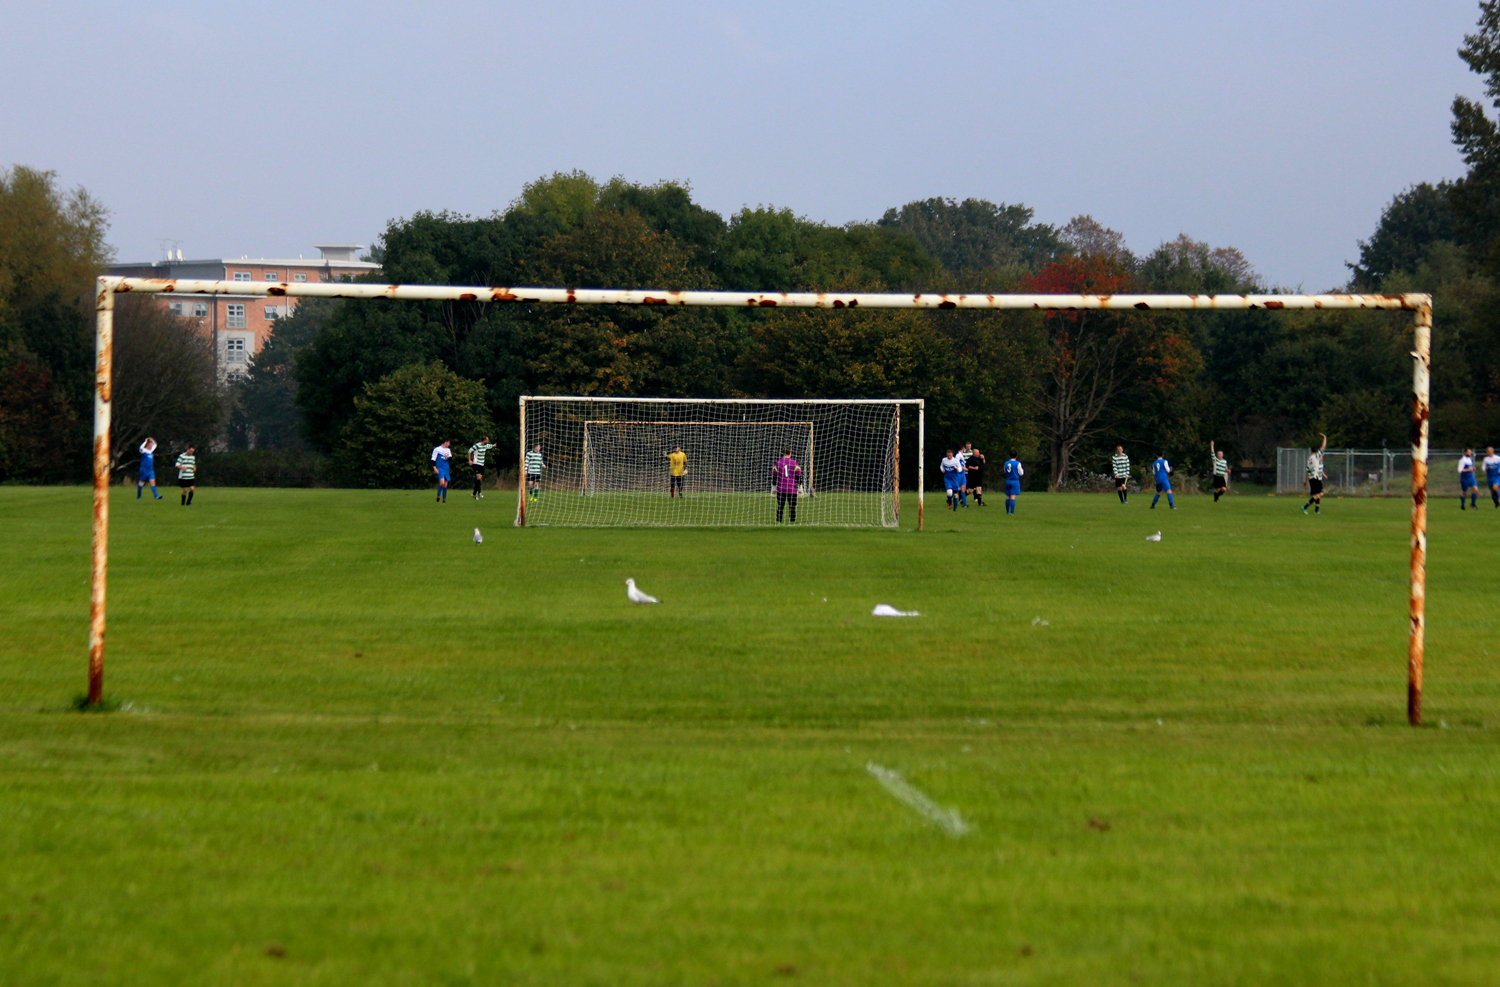 Bracknell Sunday League coverage: A response